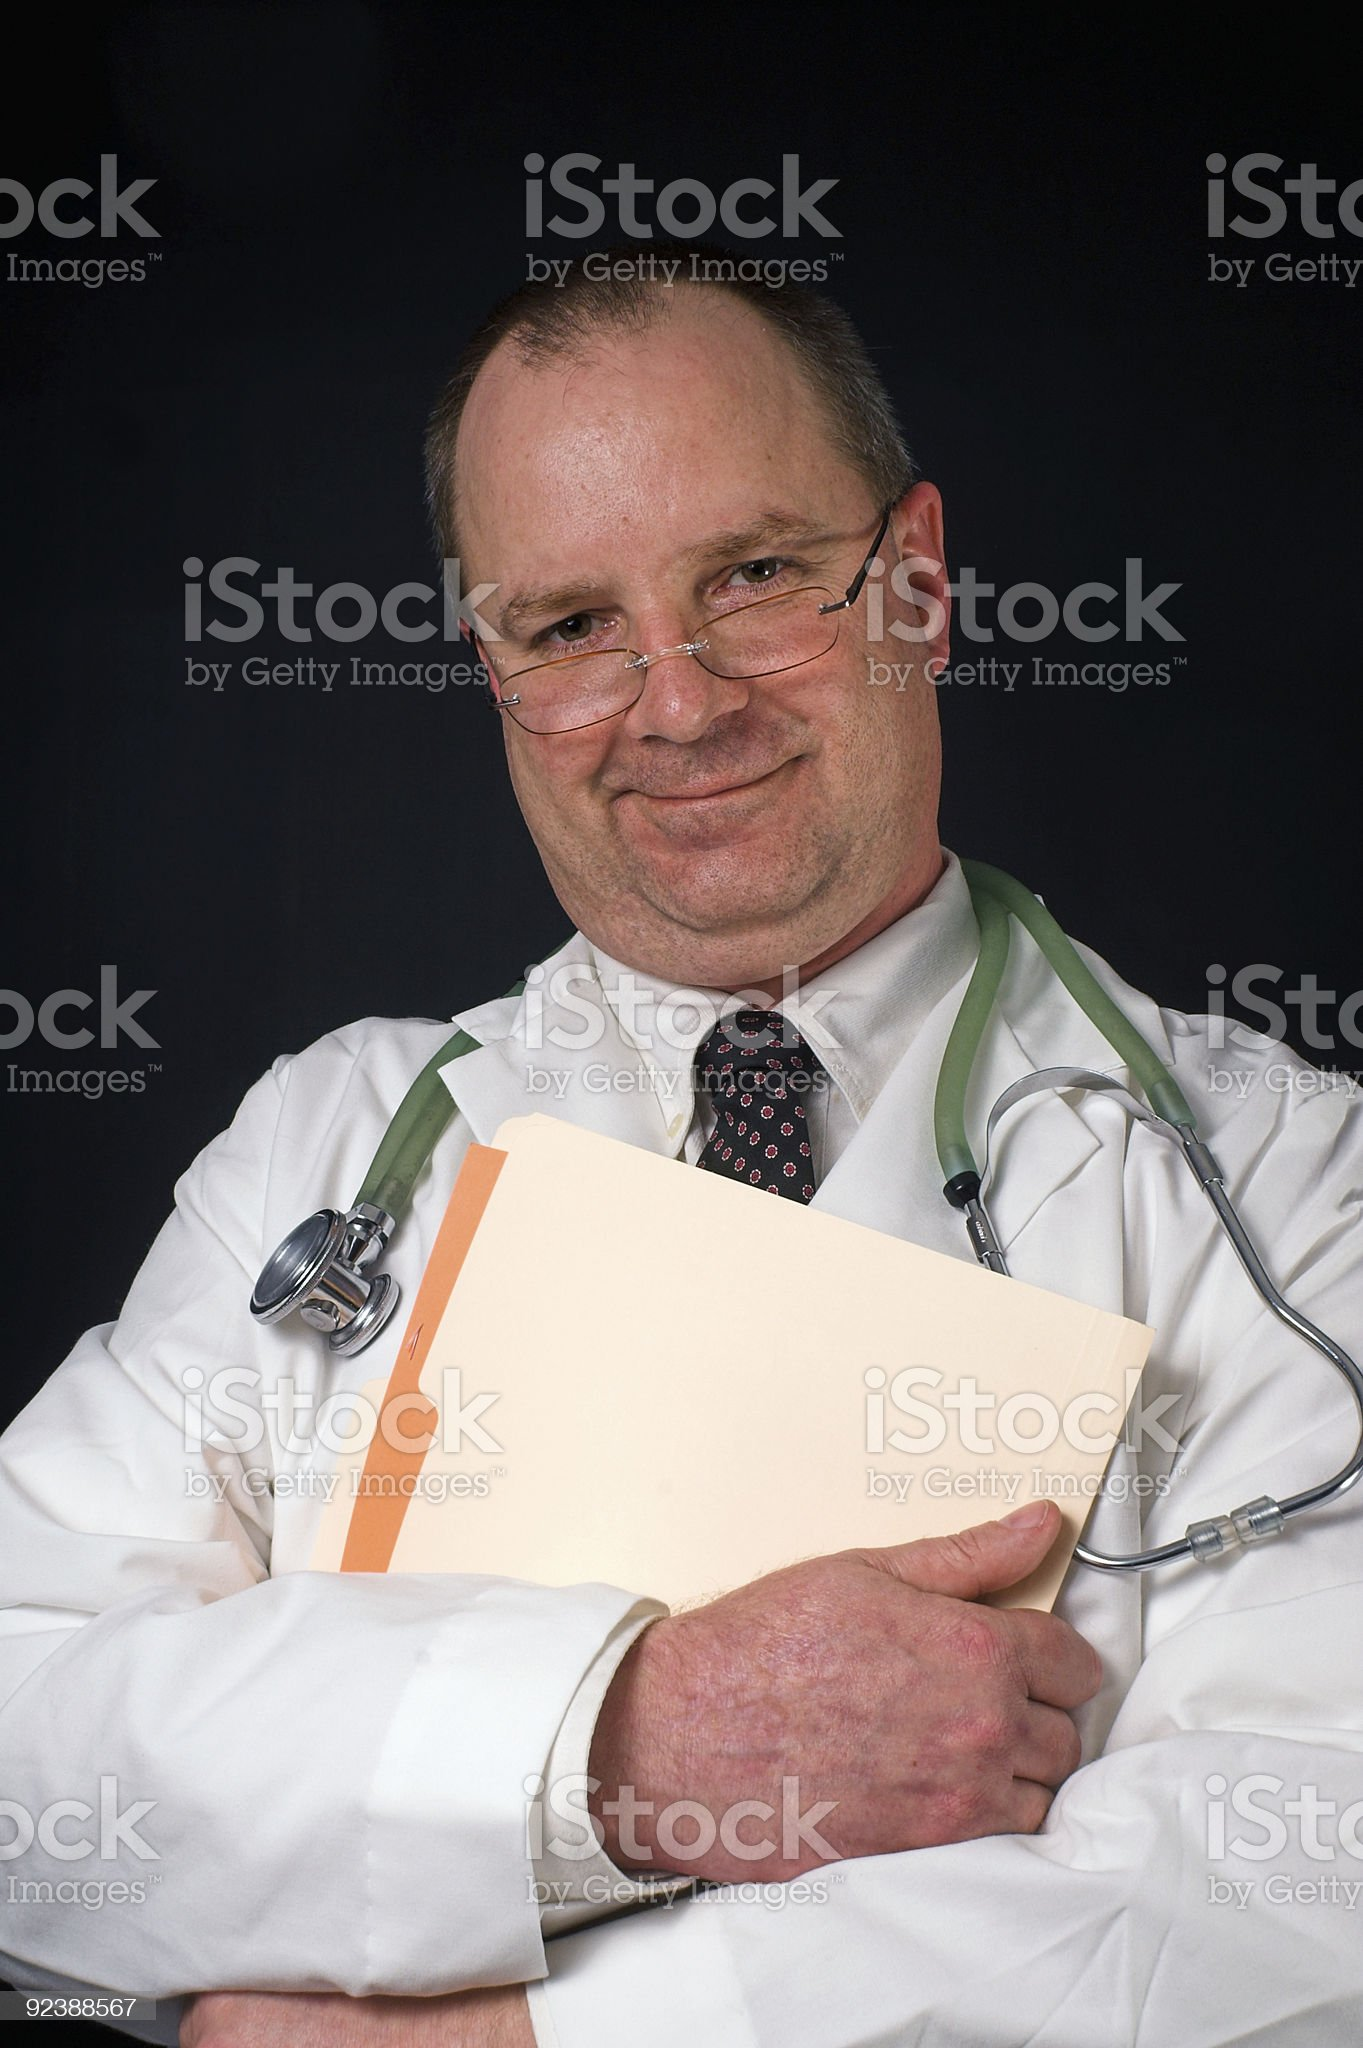 Medical Doctor royalty-free stock photo